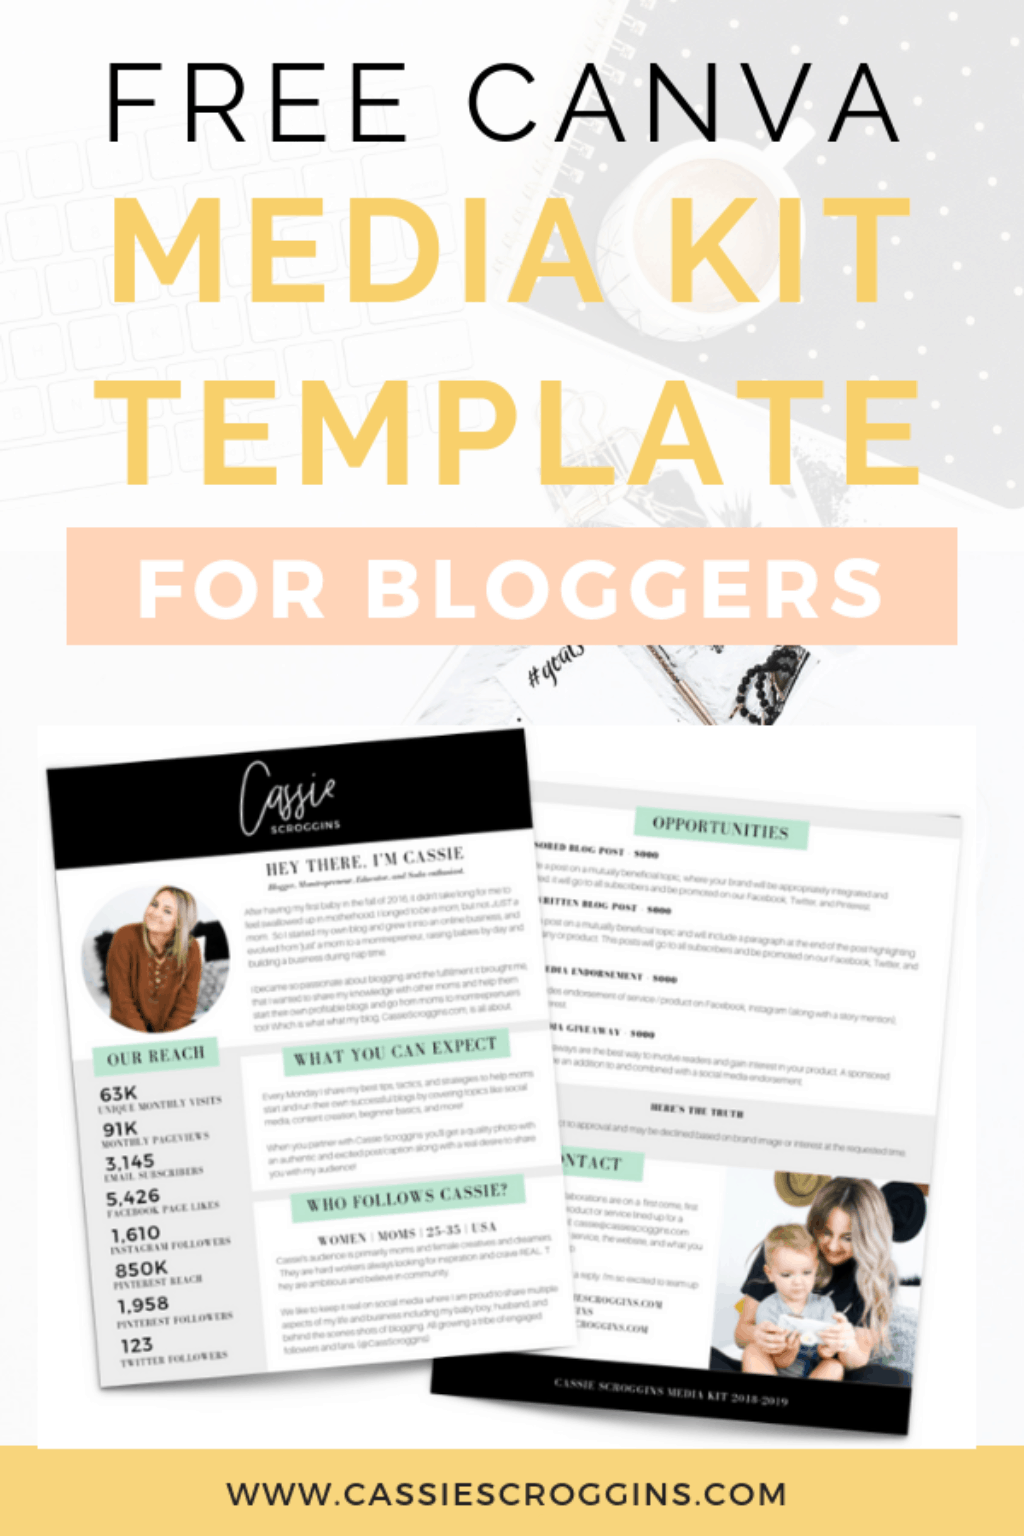 Free Canva Media Kit Template For Bloggers Cassie Scroggins